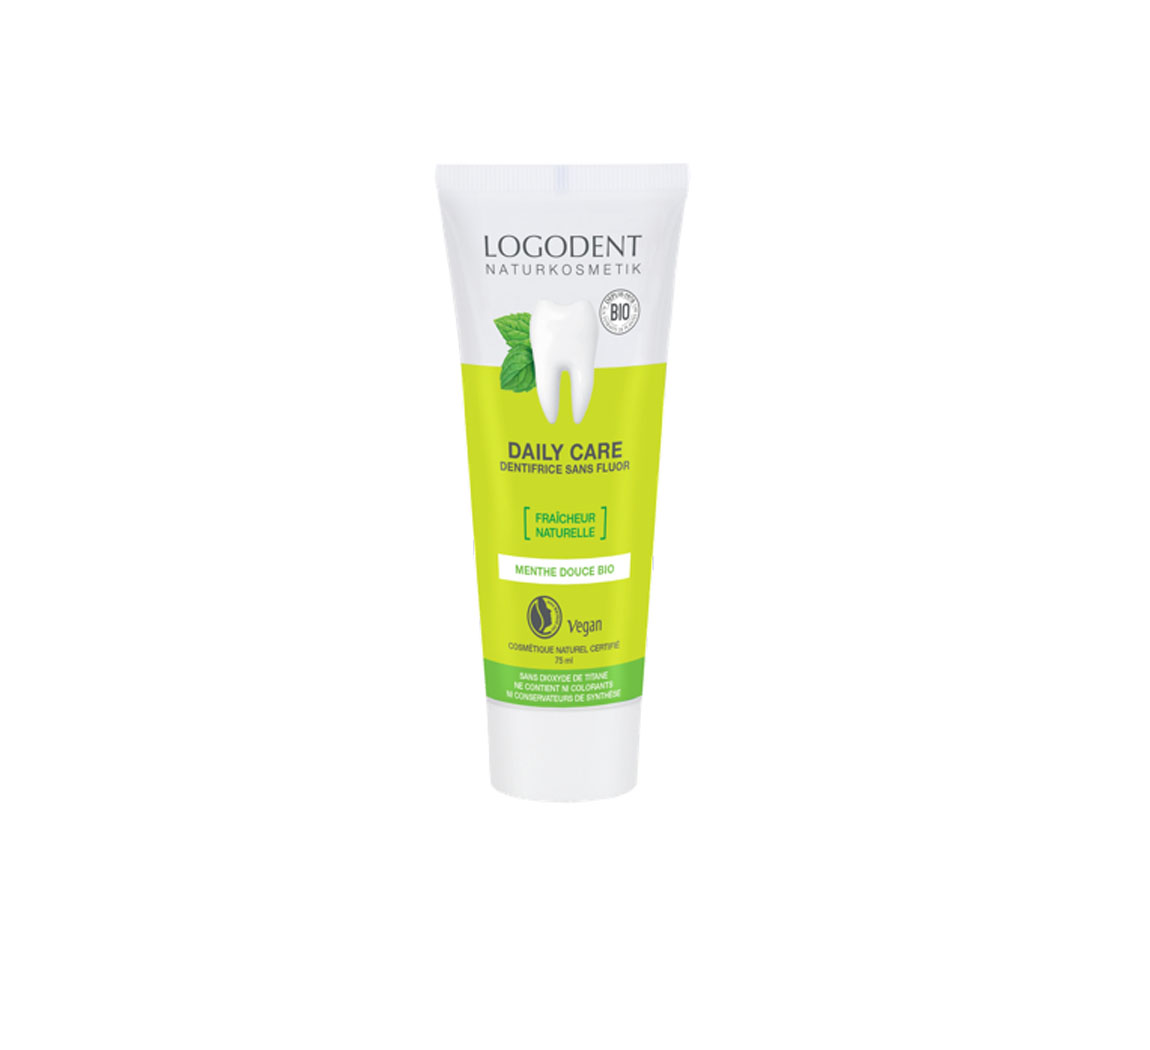 Dentifrice Daily care Logona Dentifrice Daily Care